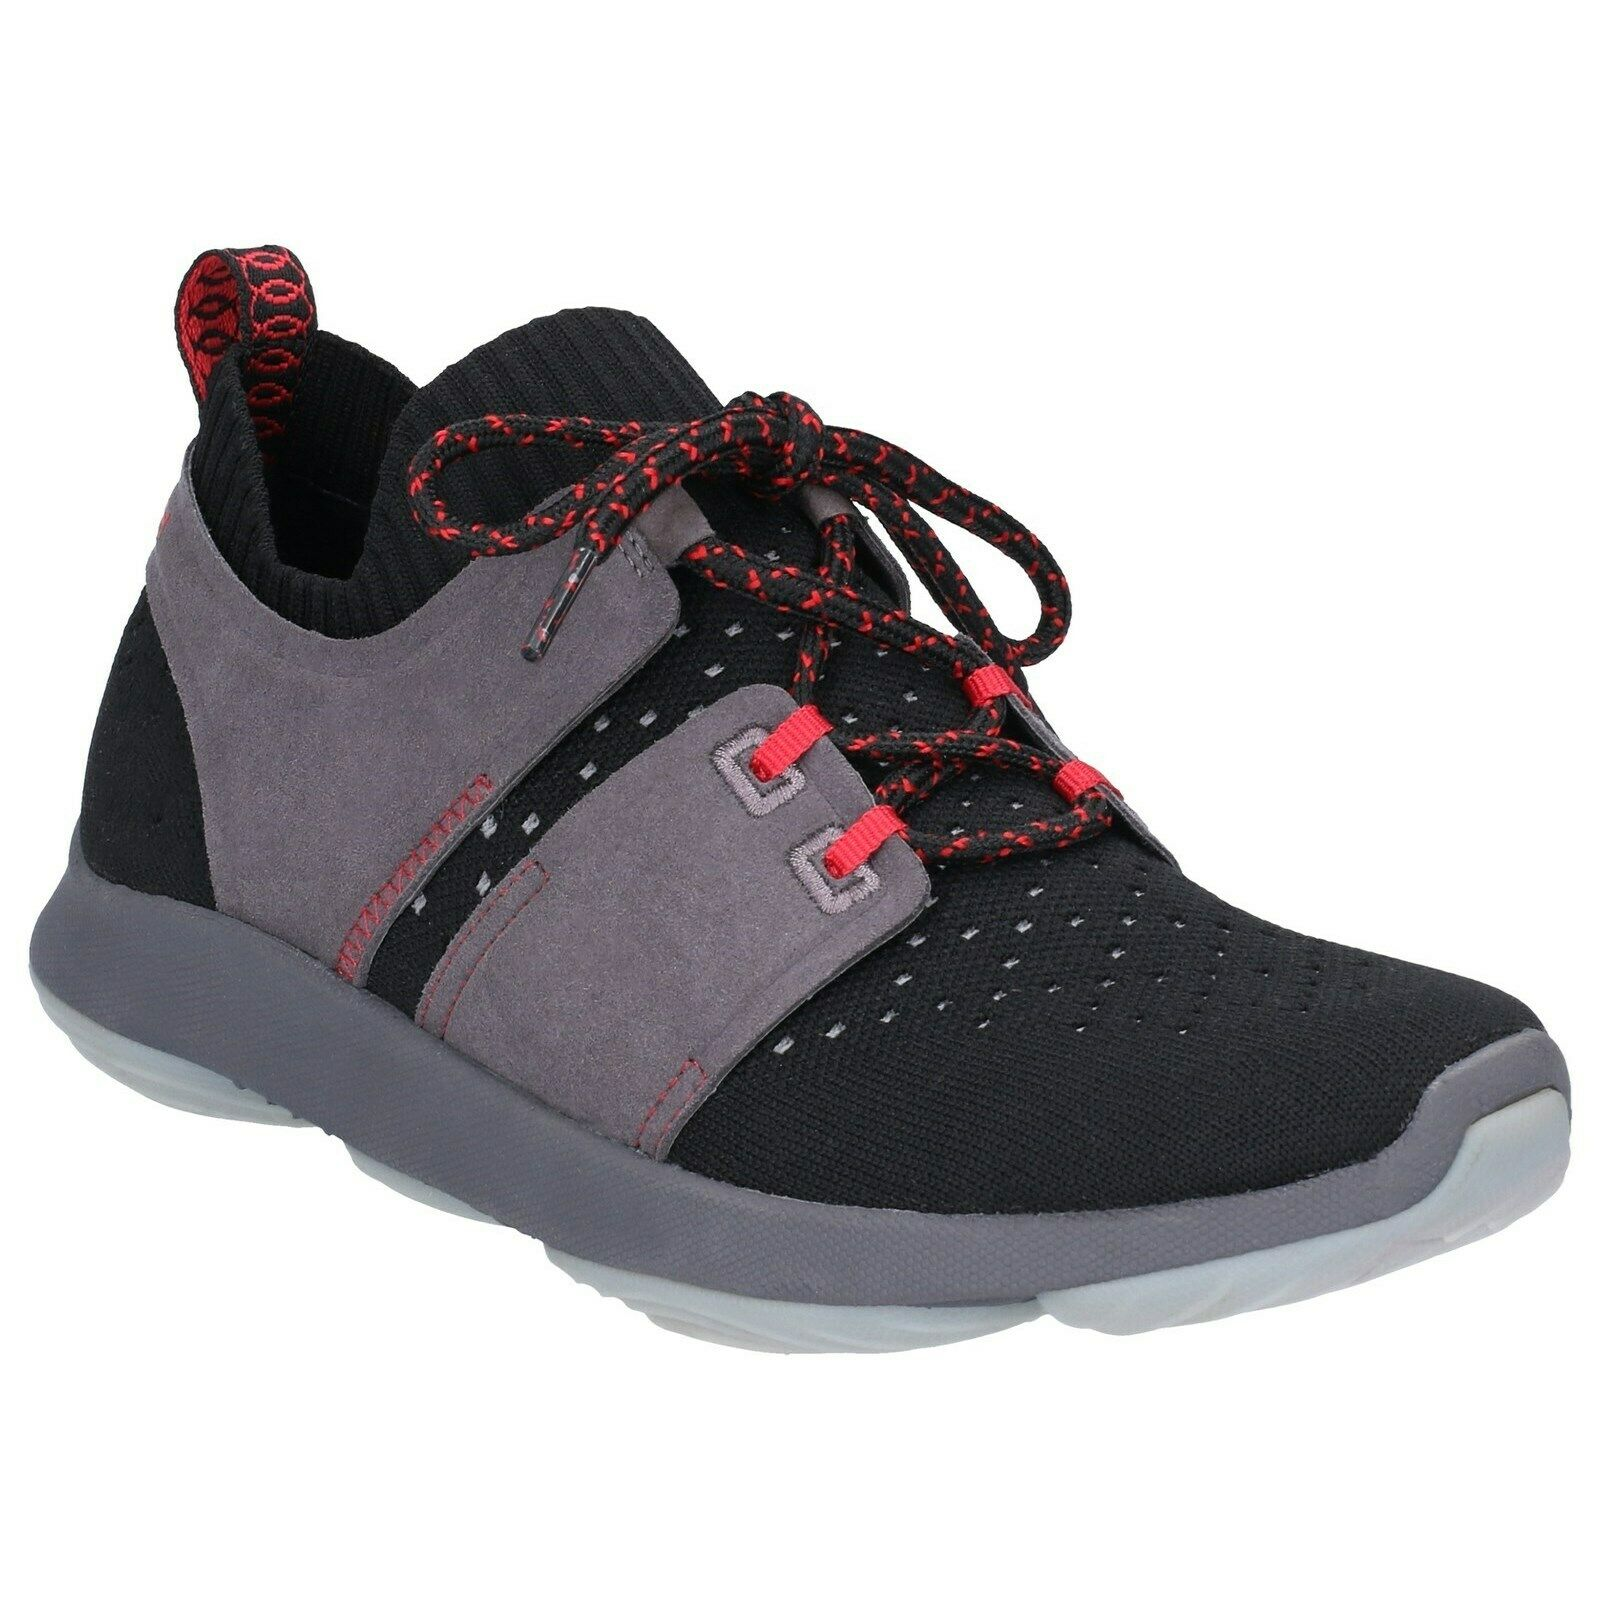 Hush Puppies World BounceMax Trainers Womens Sports BioDeWix Knit Sneakers shoes